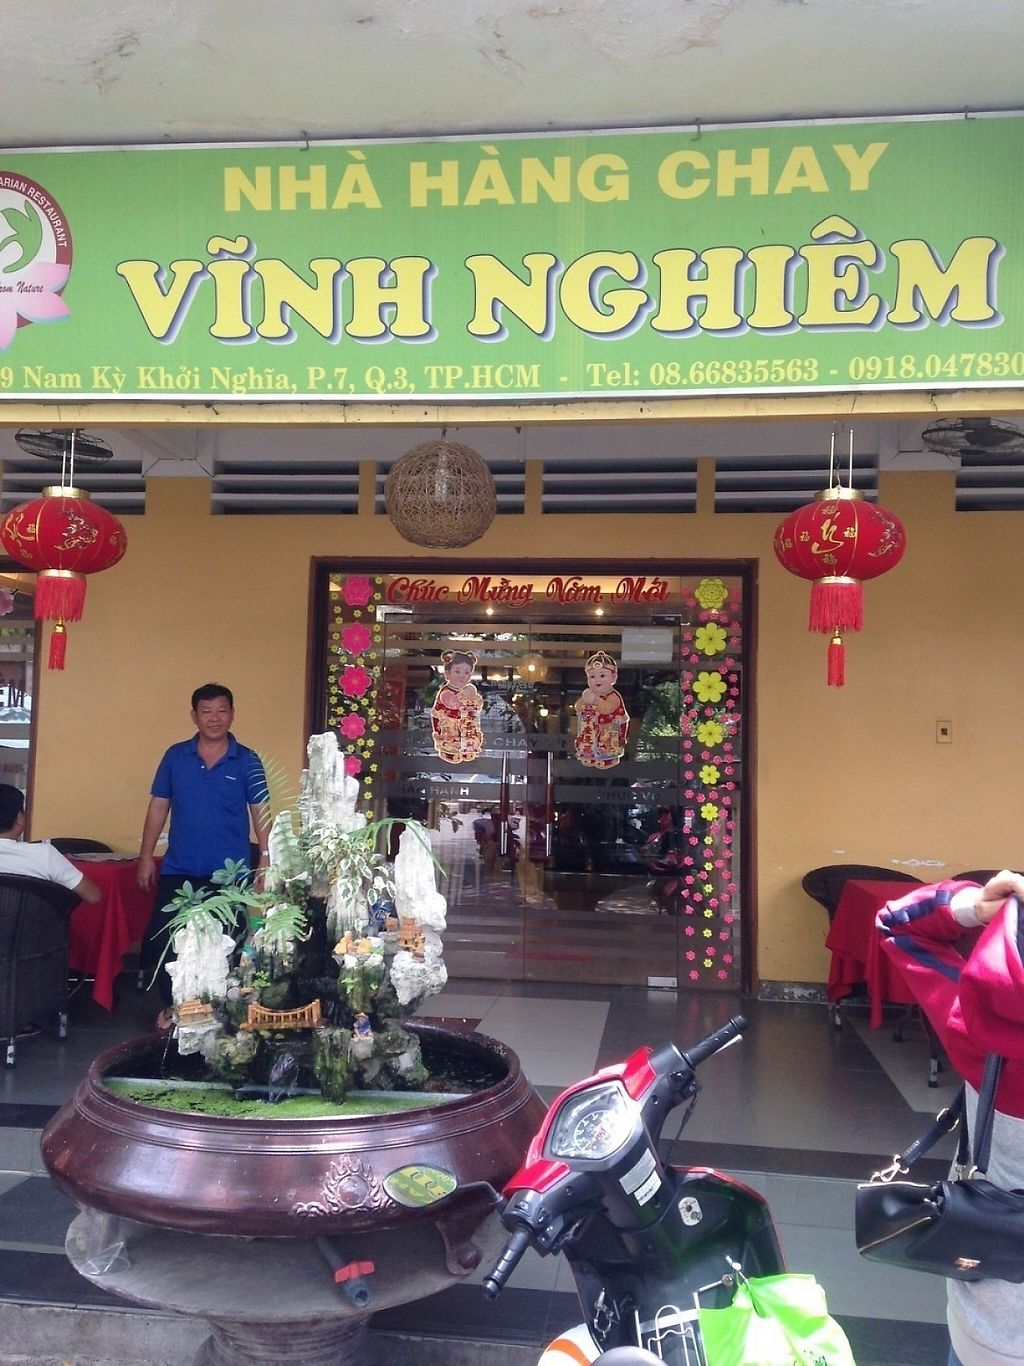 """Photo of Vinh Nghiem  by <a href=""""/members/profile/harryang"""">harryang</a> <br/>Vinh nghiem <br/> April 1, 2017  - <a href='/contact/abuse/image/87724/243296'>Report</a>"""